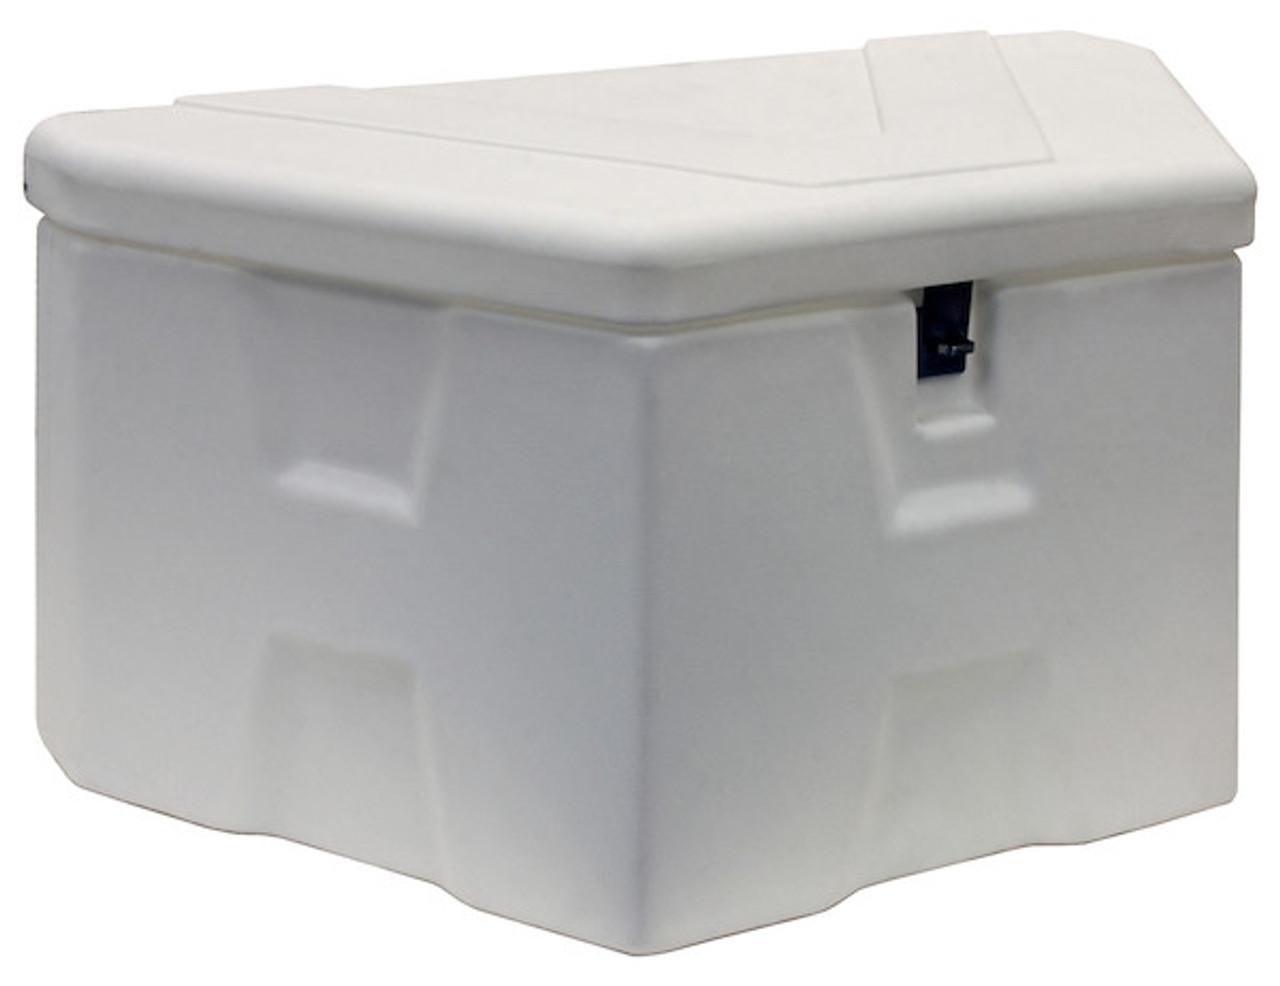 "1701679 BUYERS PRODUCTS WHITE POLY TRAILER TONGUE TRUCK TOOLBOX 18""HX19""DX36""W"